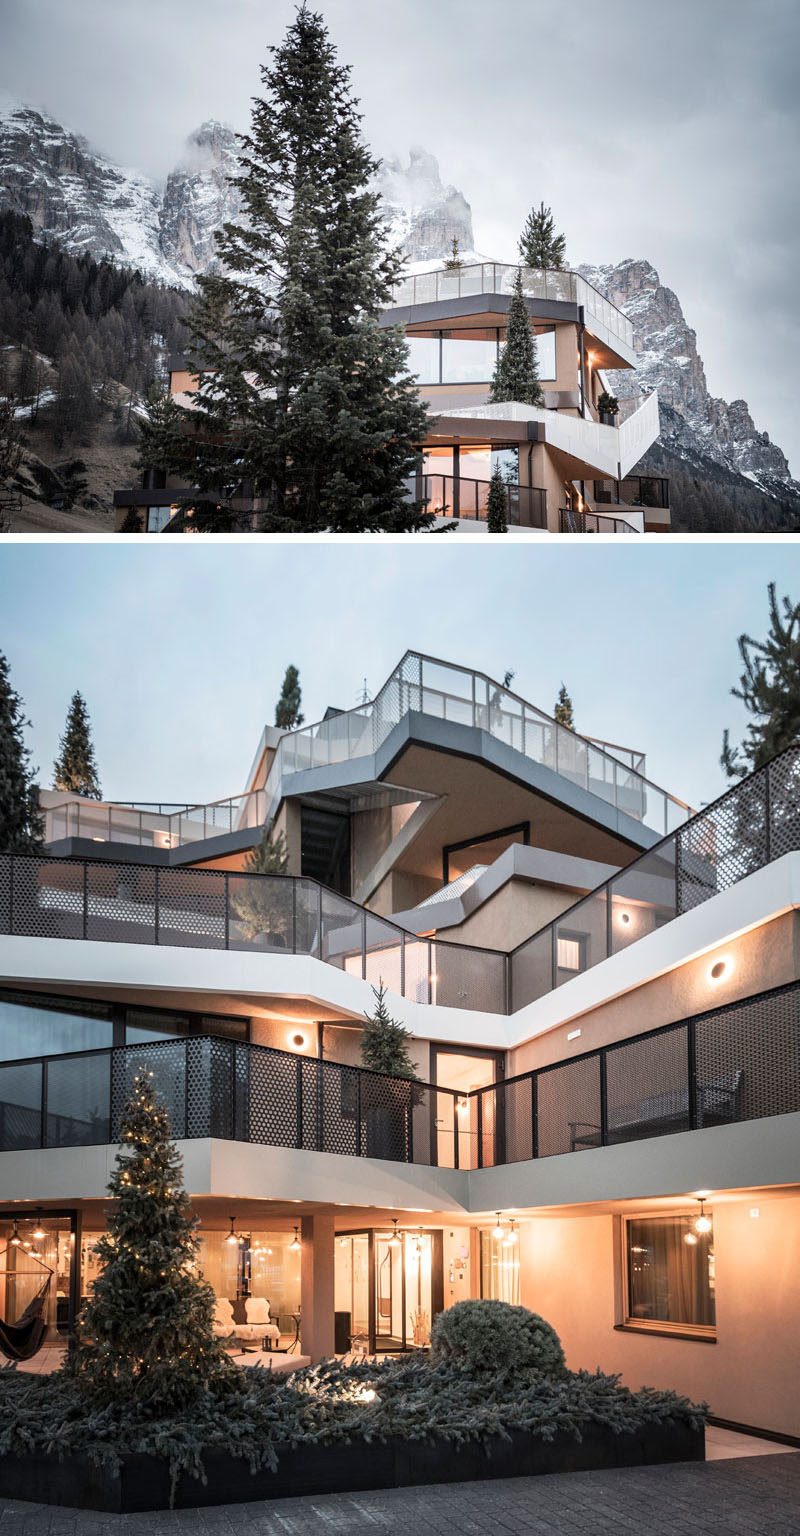 noa* have redesigned Hotel Tofana in Italy, with terraces and balconies are lined with coniferous trees and plants, which are connected by vertical ramps and stairs, creating an illusion of a summit for the hotel.